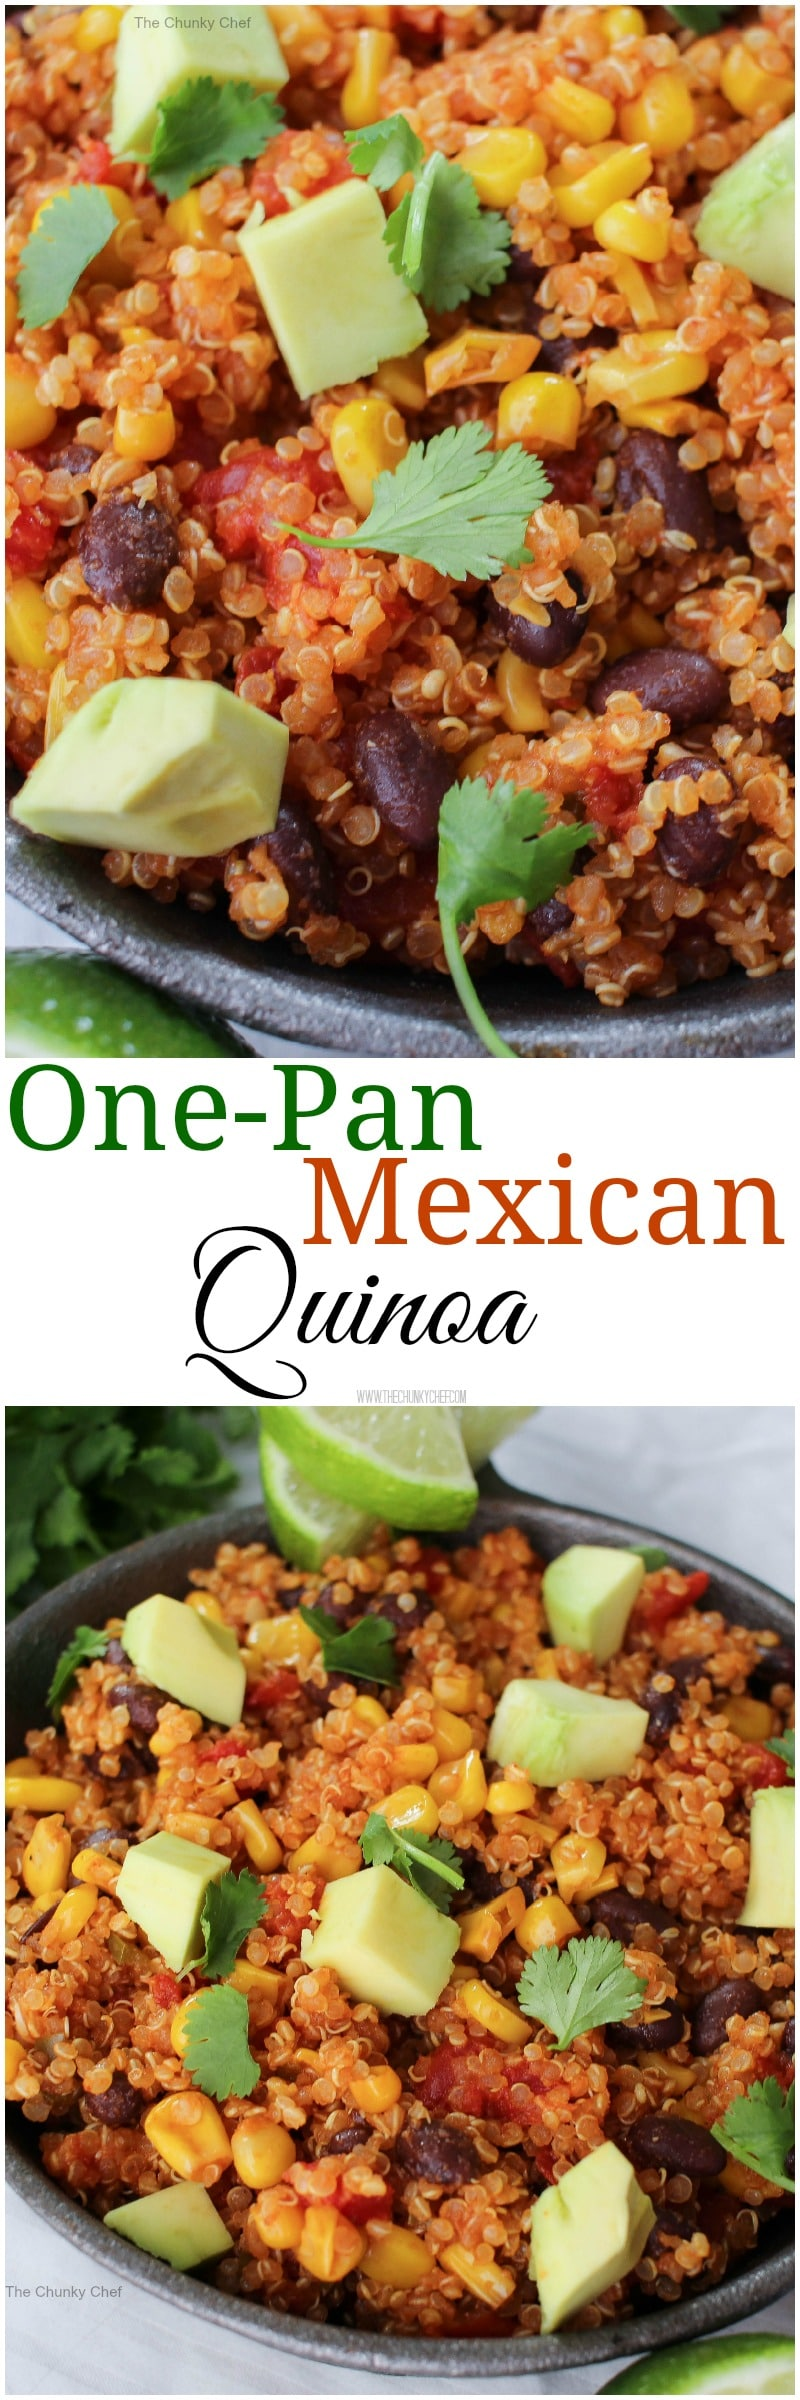 One Pan Mexican Quinoa Skillet | The Chunky Chef